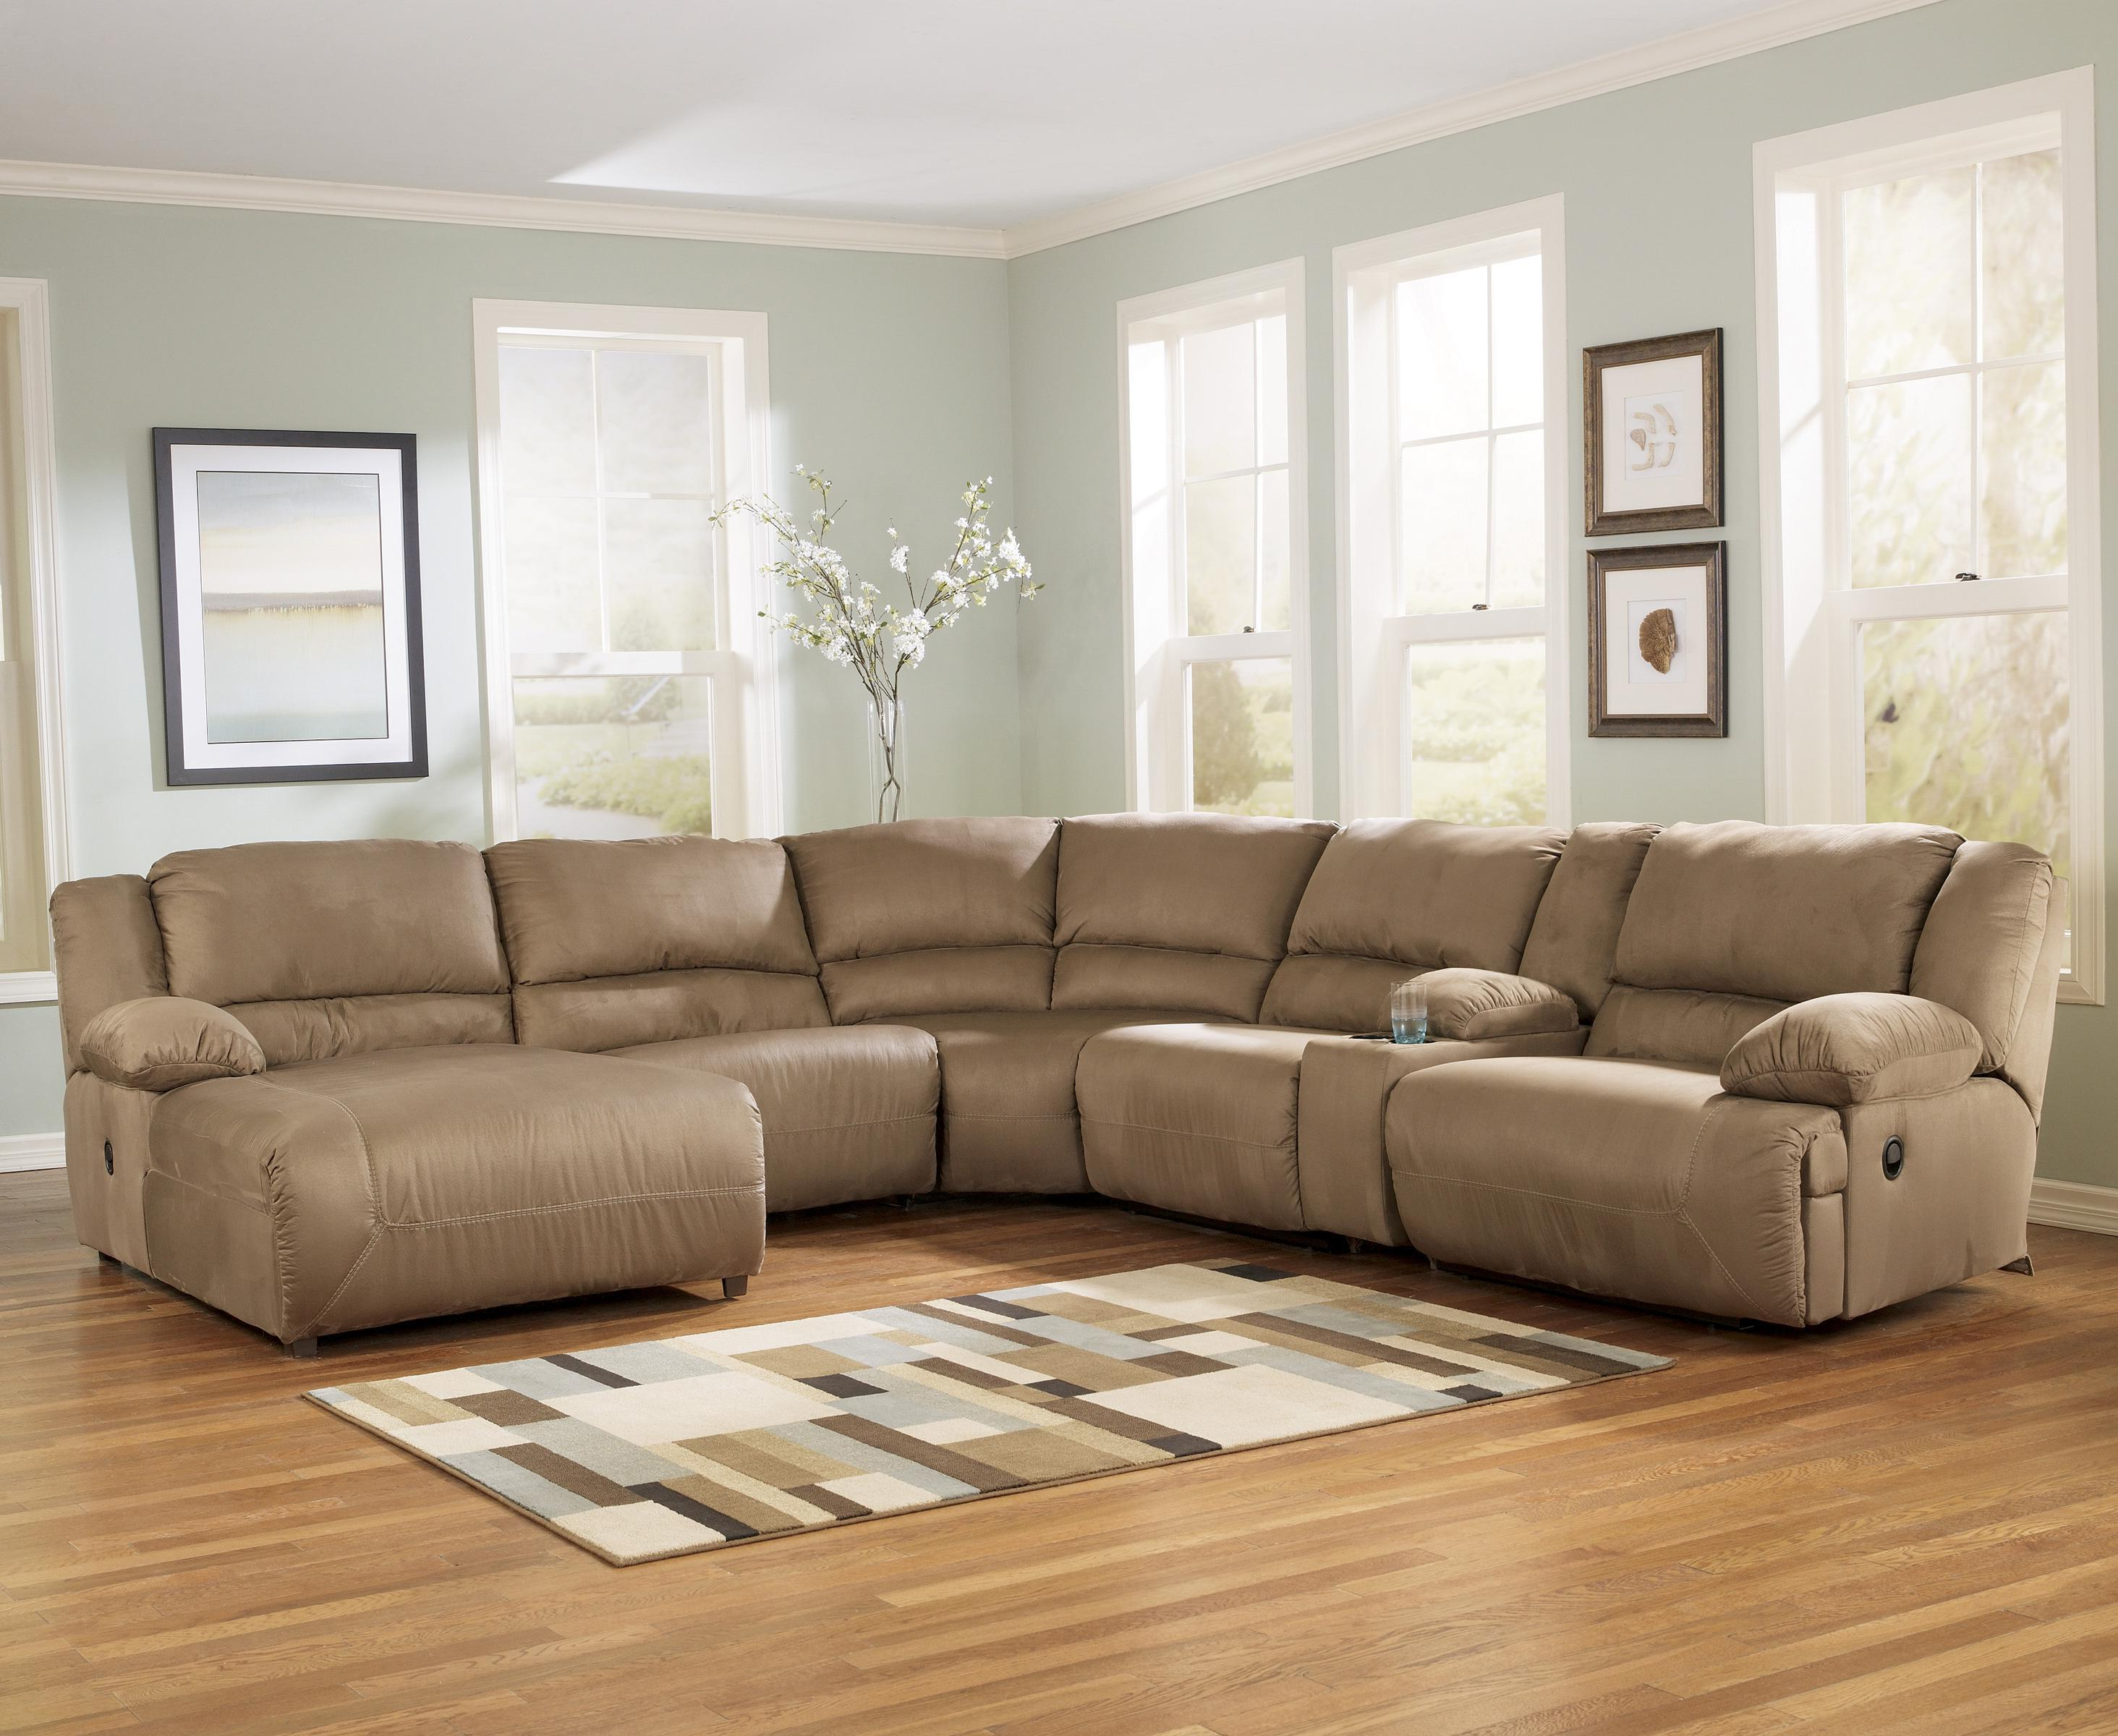 product bed wall murphysofa luxury opened couch ultra adagio plush sectional expand prev sofa queen